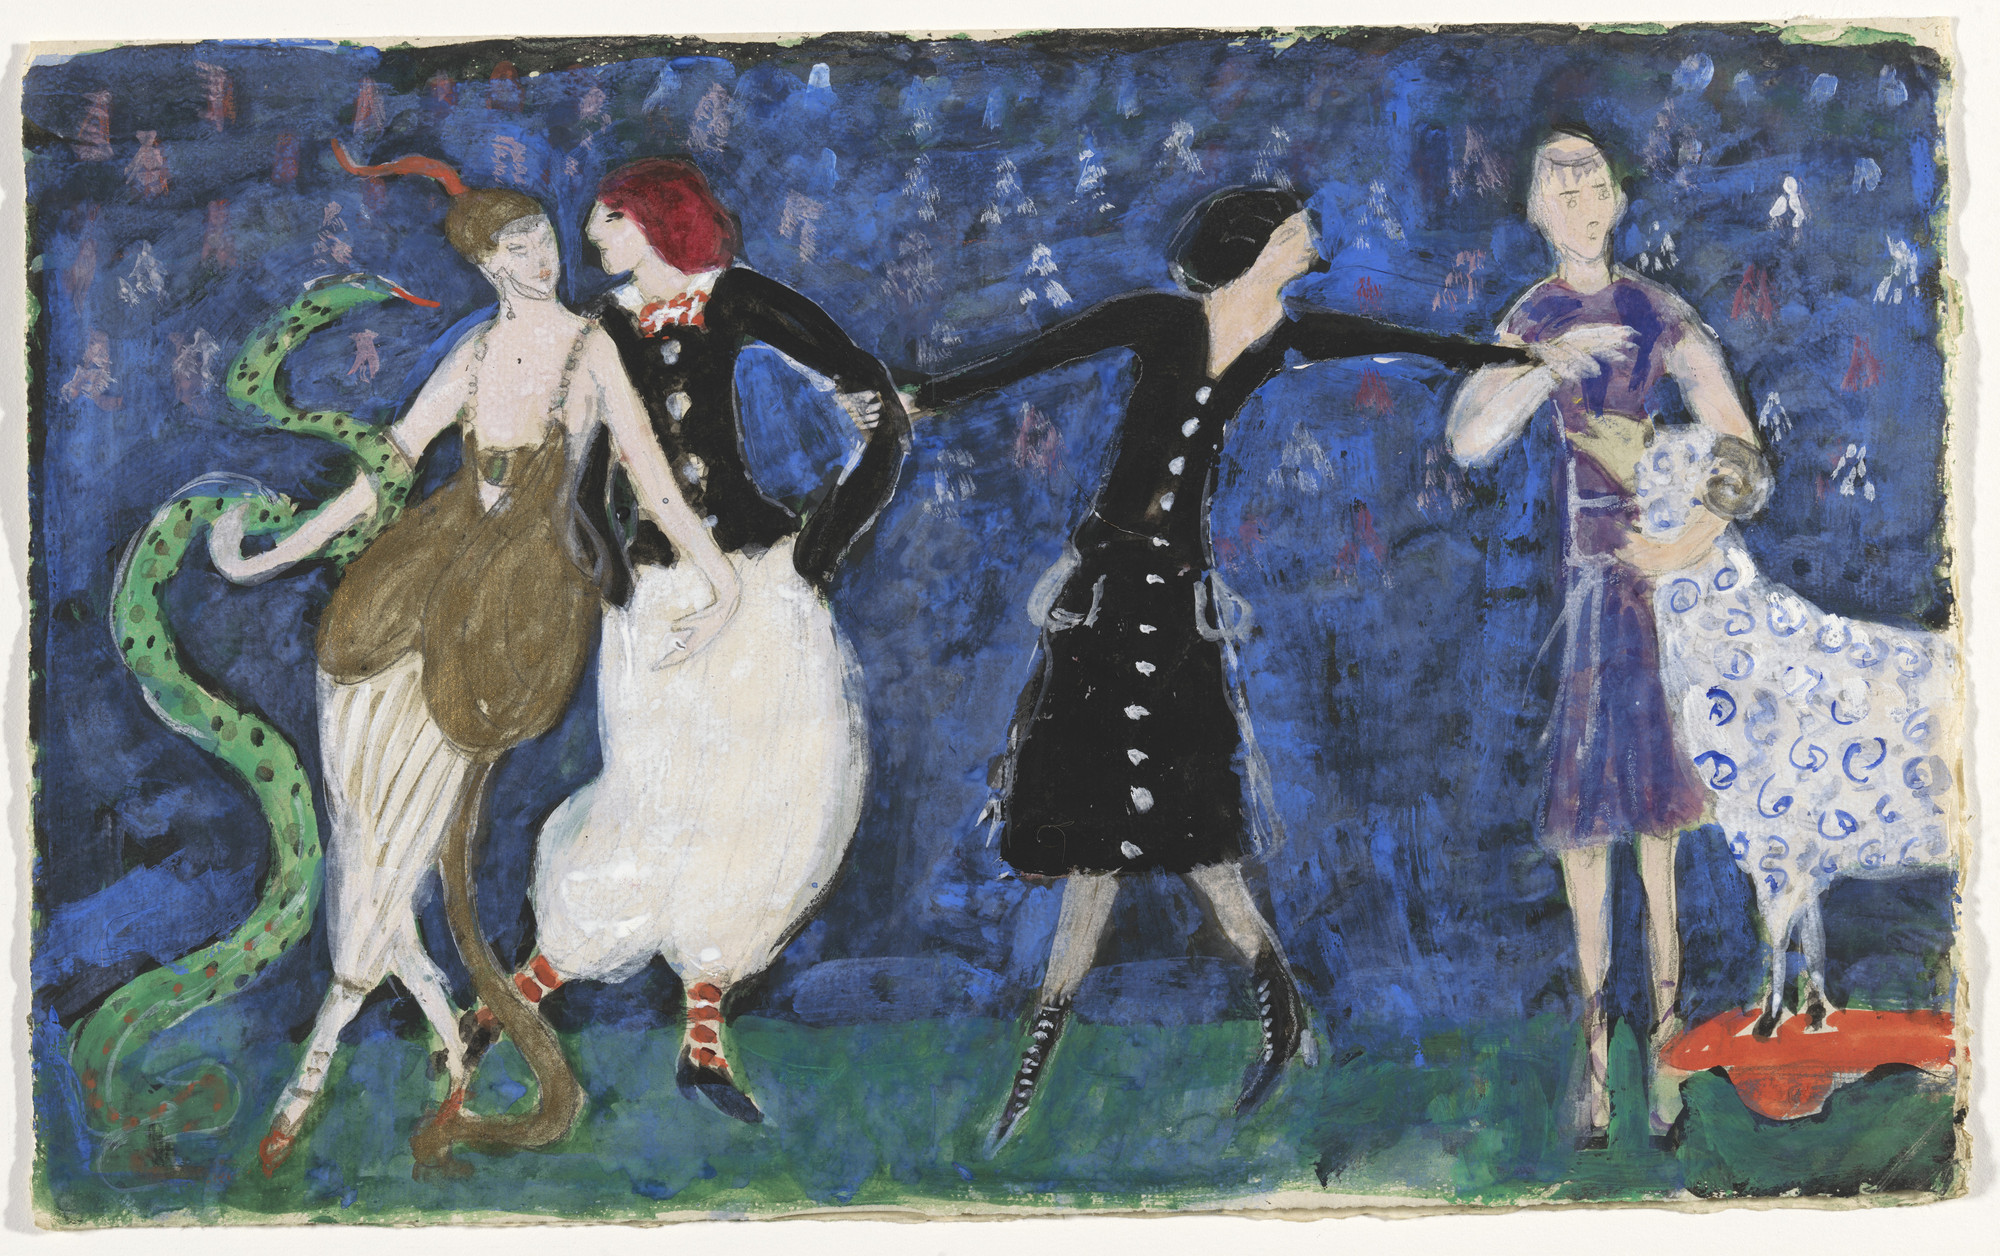 Florine Stettheimer. Costume design (Euridice and the Snake, Two Tango Dancers, and St. Francis) for artist's ballet Orphée of the Quat-z-arts. c. 1912